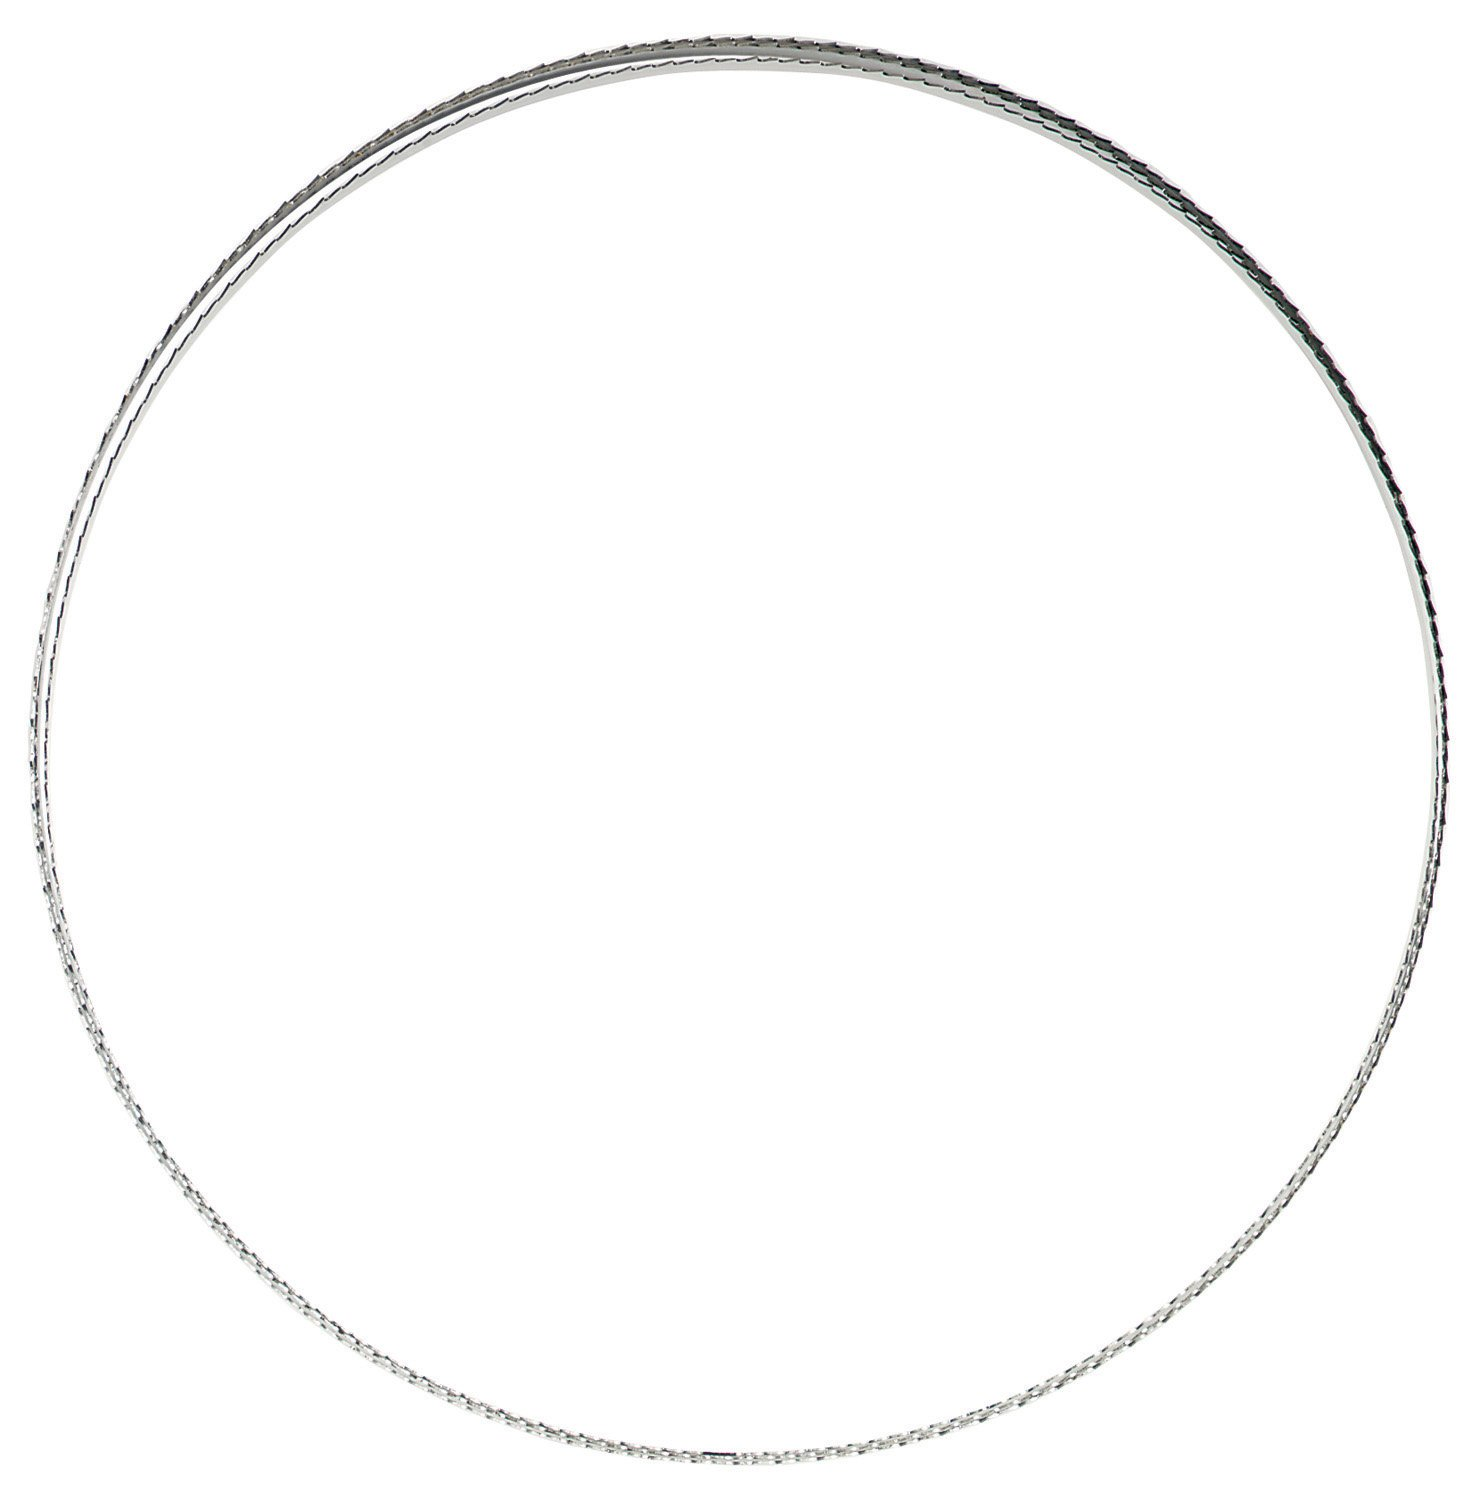 DELTA 28-964 14-Inch Band Saw Blade 1/4-Inch by 93-1/2-Inch 6 TPI